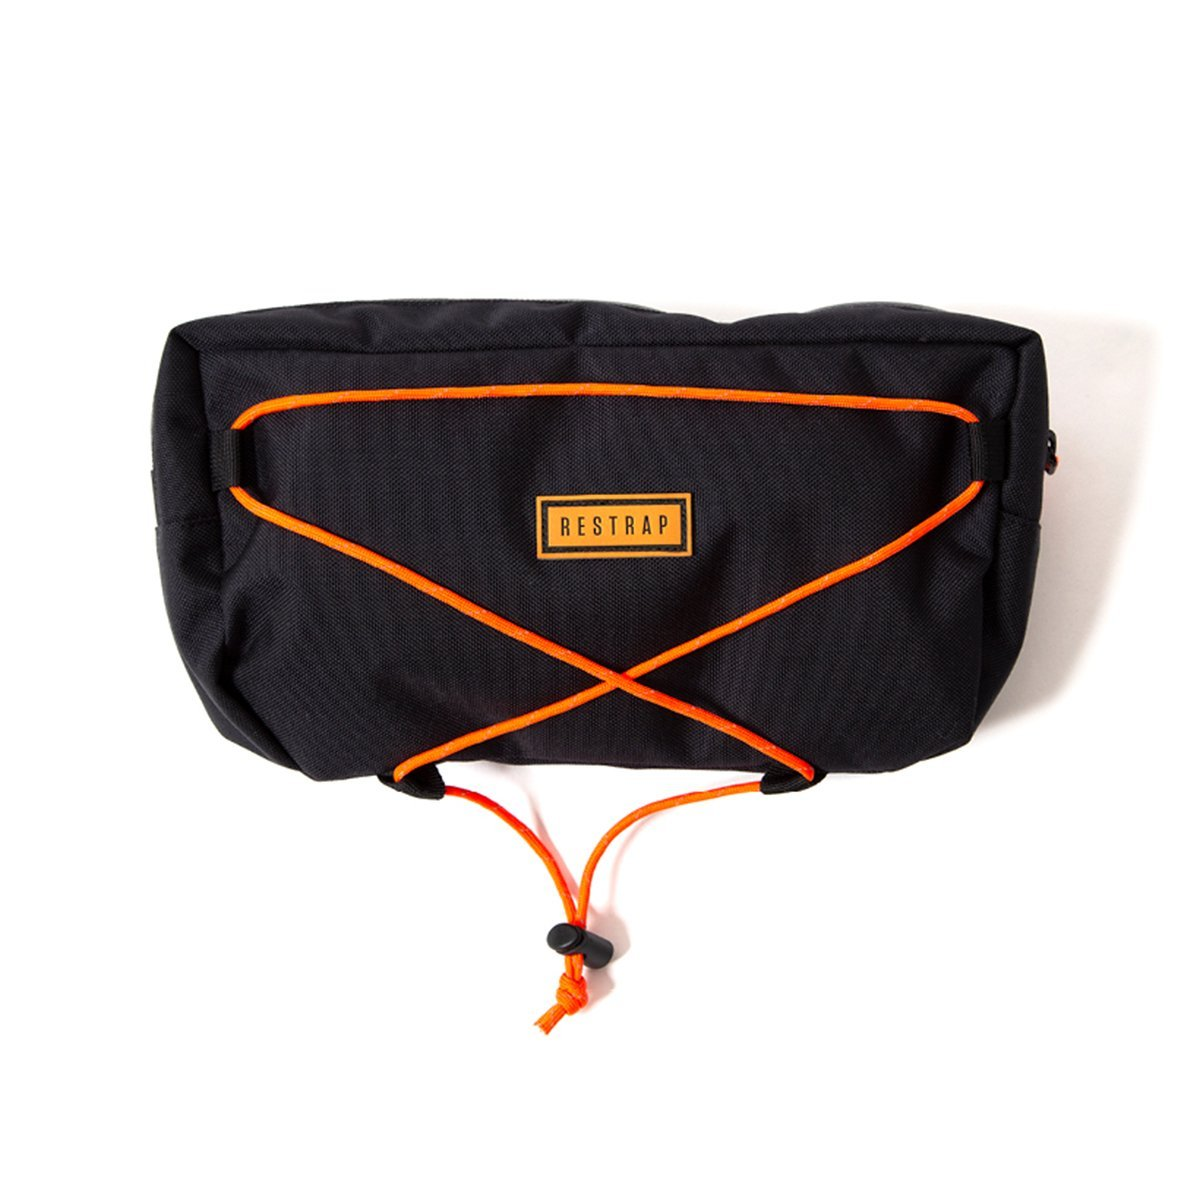 Restrap | Large Bar Bag | Bike Handlebar Bag | Bicycle Handlebar Bag | Black